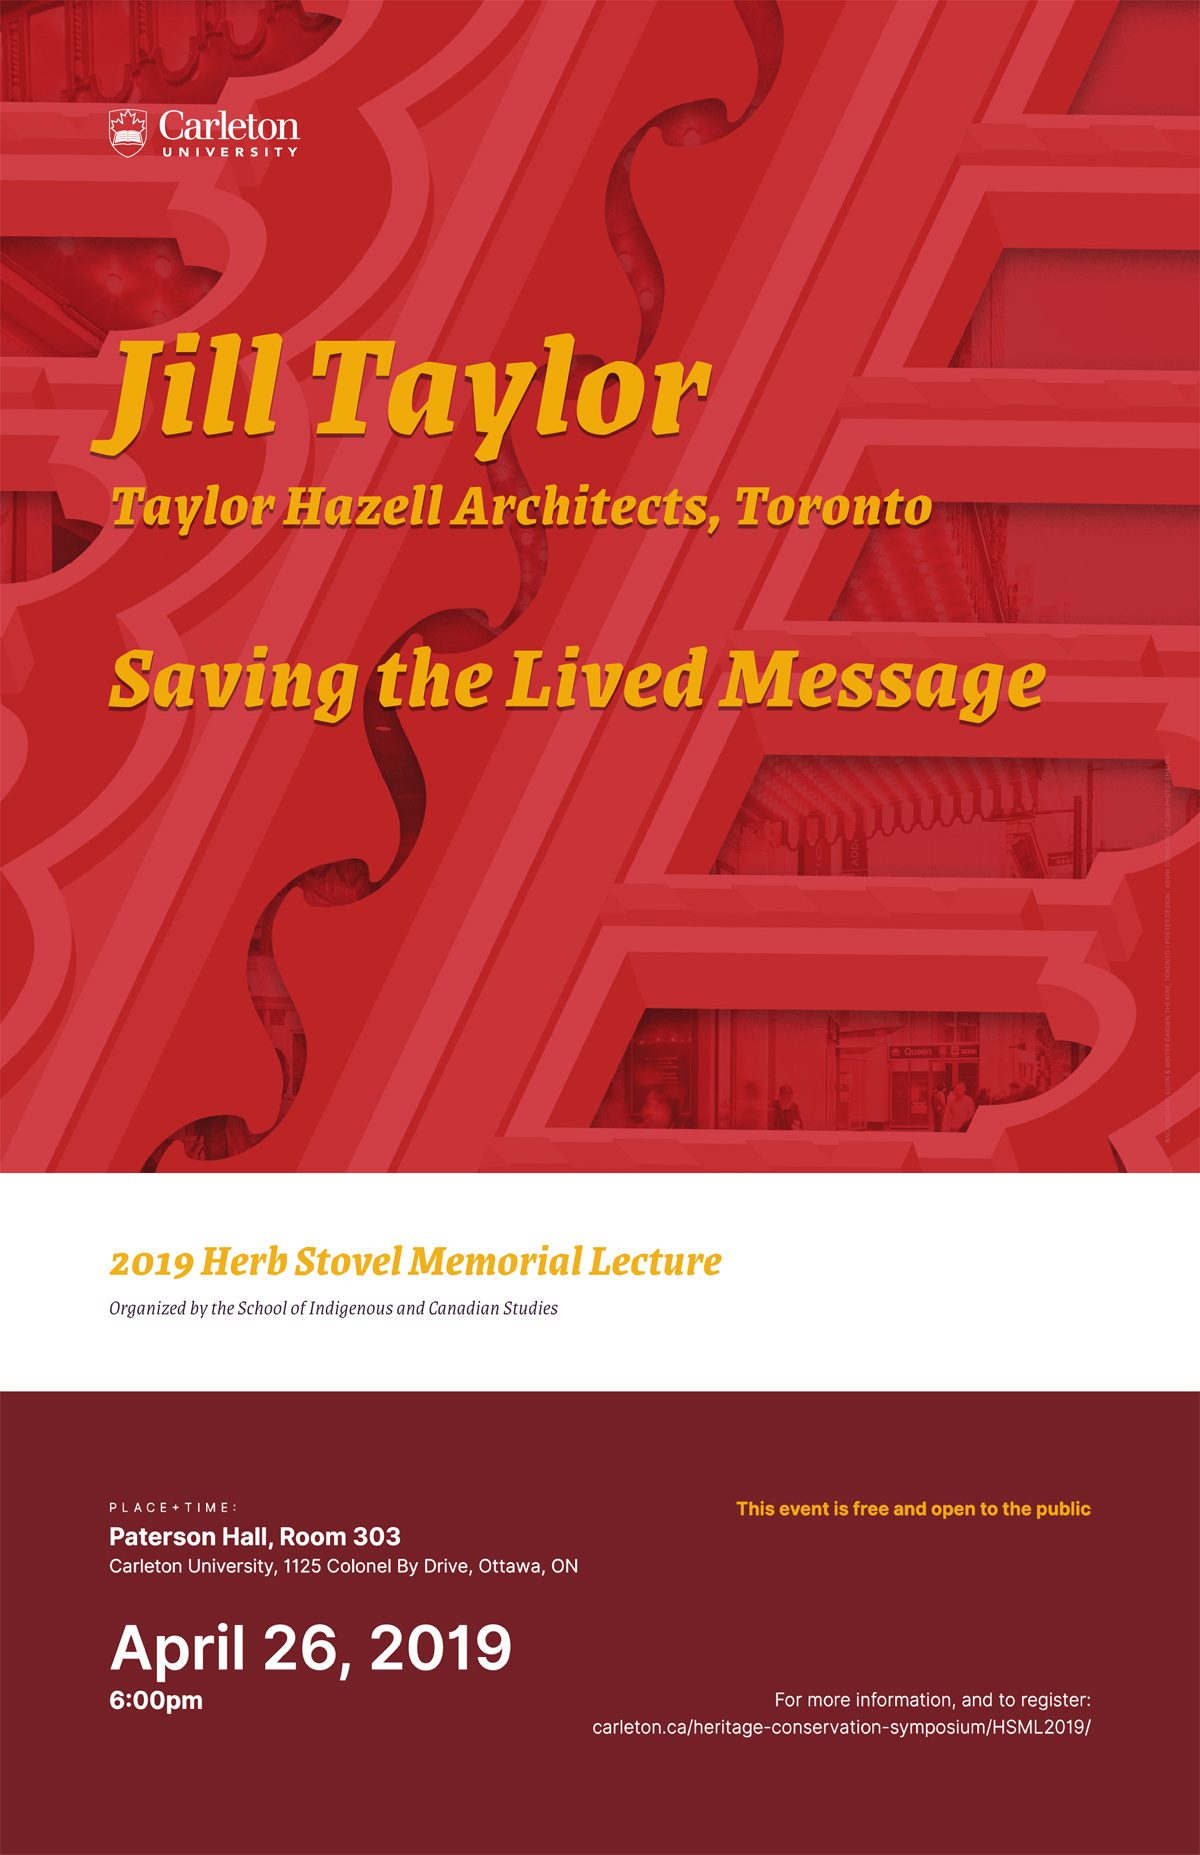 Herb Stovel Memorial Lecture 2019